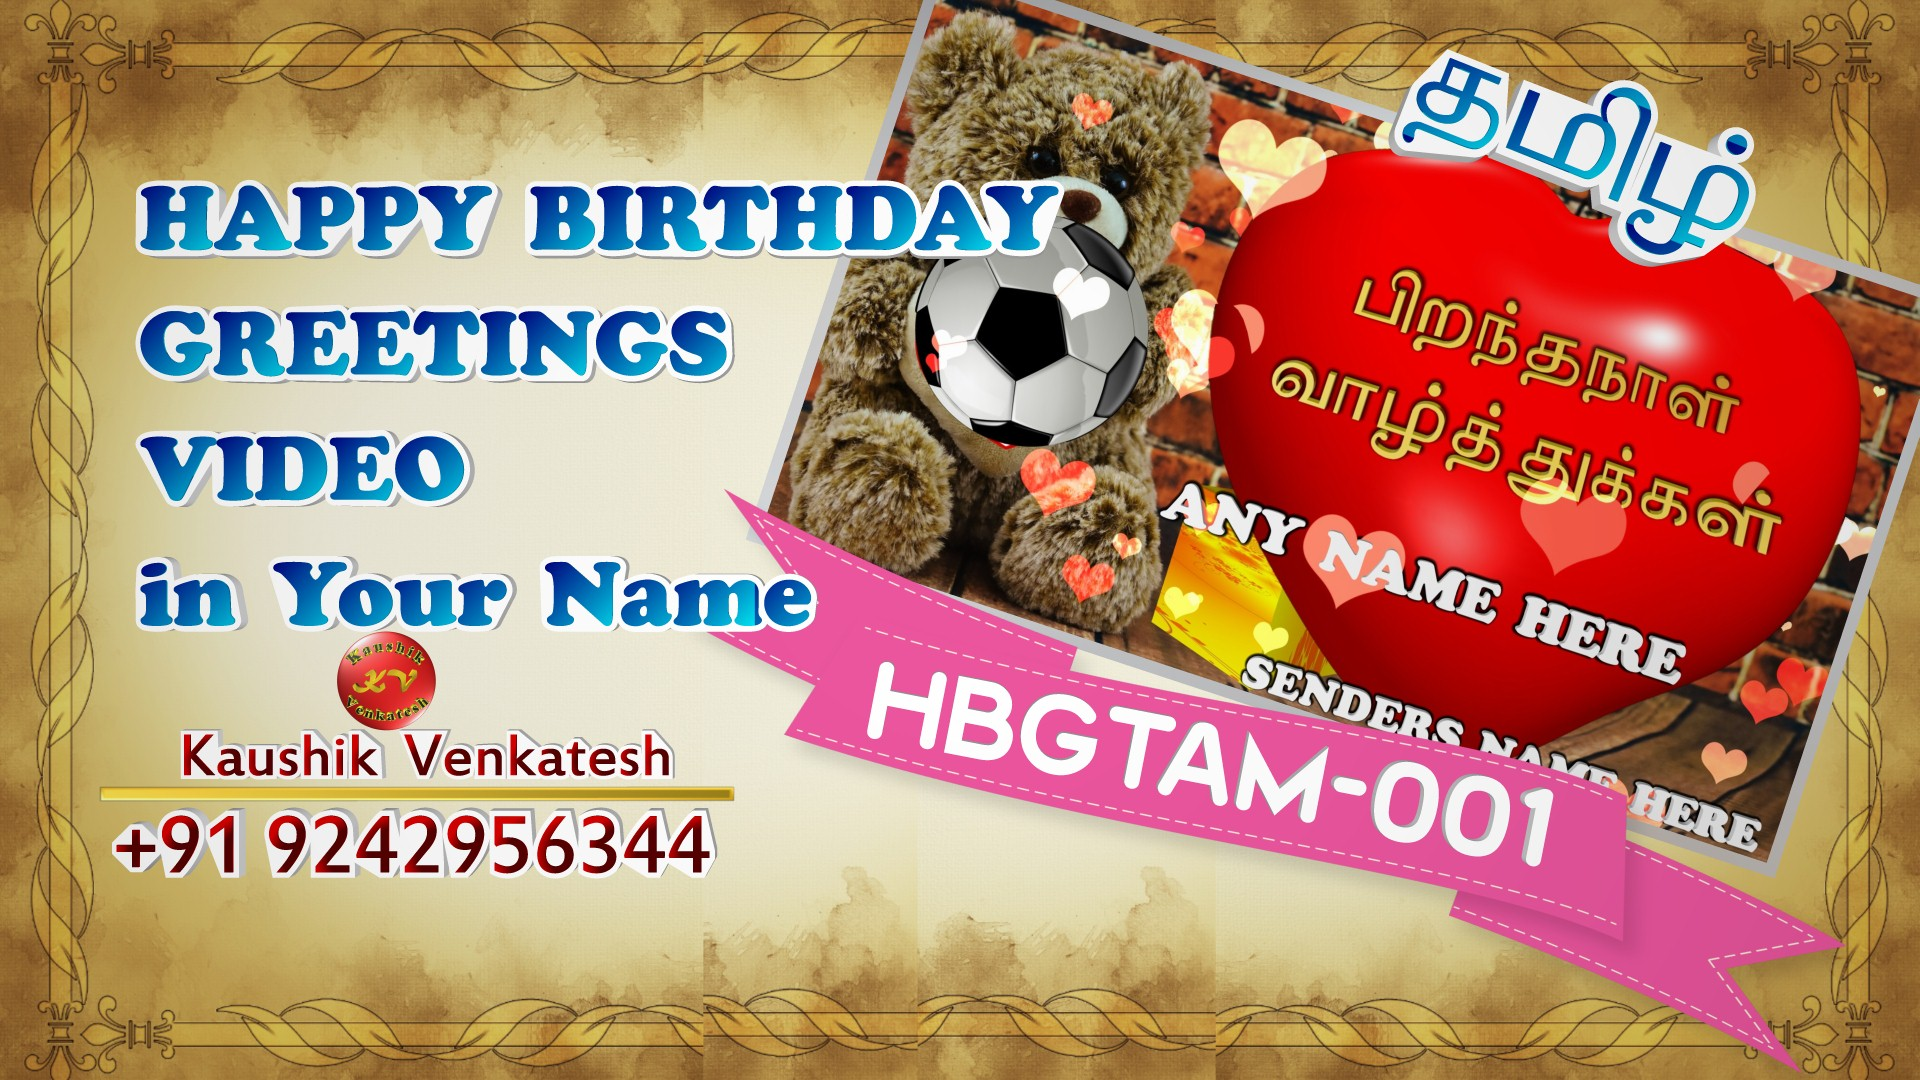 Tamil Birthday Wishes Personalized Video